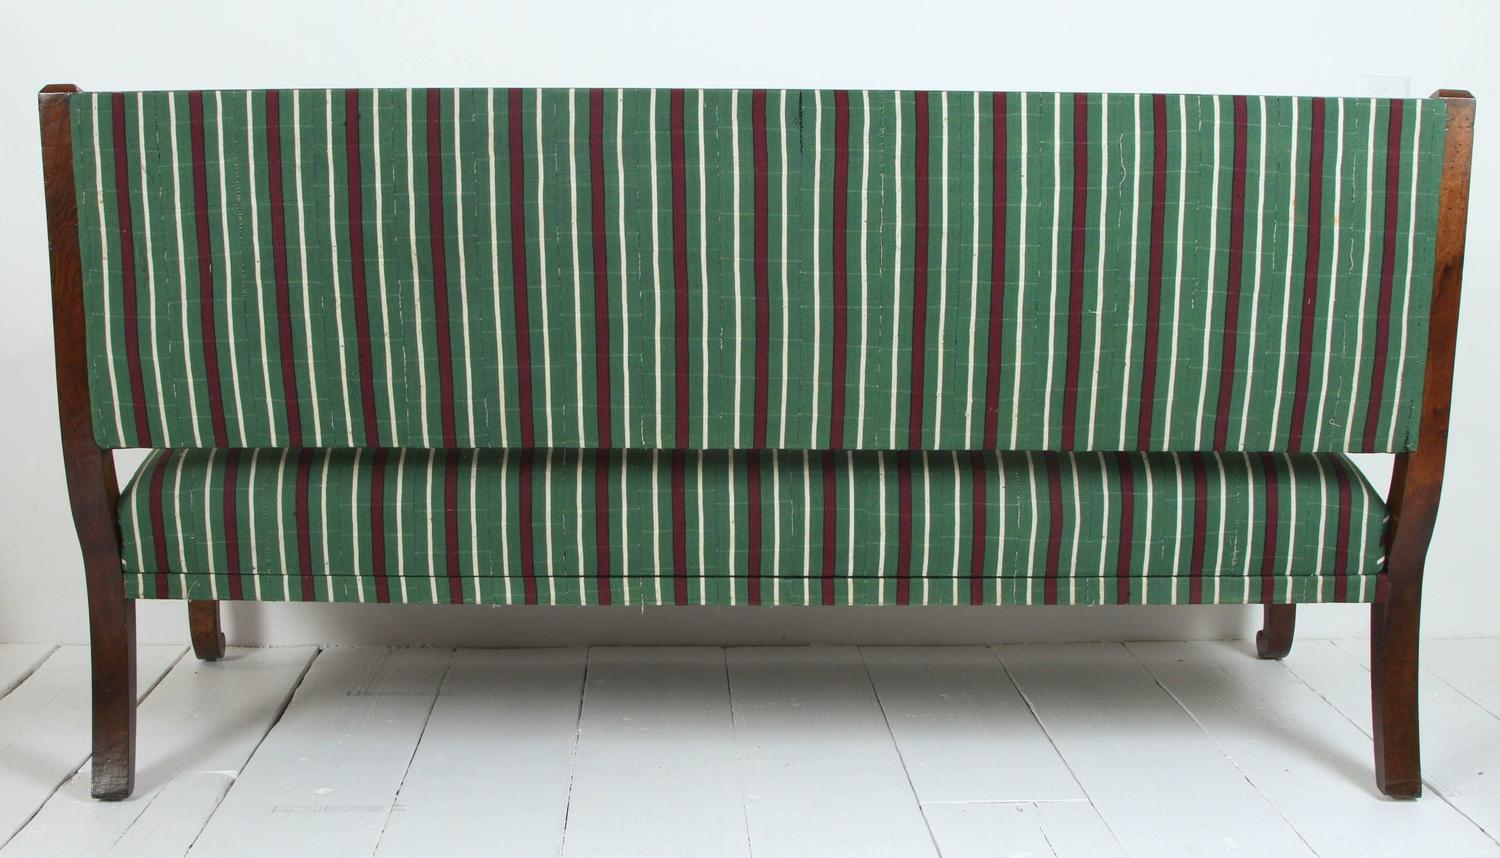 Italian Wood Bench Upholstered In Striped African Fabric For Sale At . Full resolution‎  image, nominally Width 1500 Height 858 pixels, image with #5E3032.